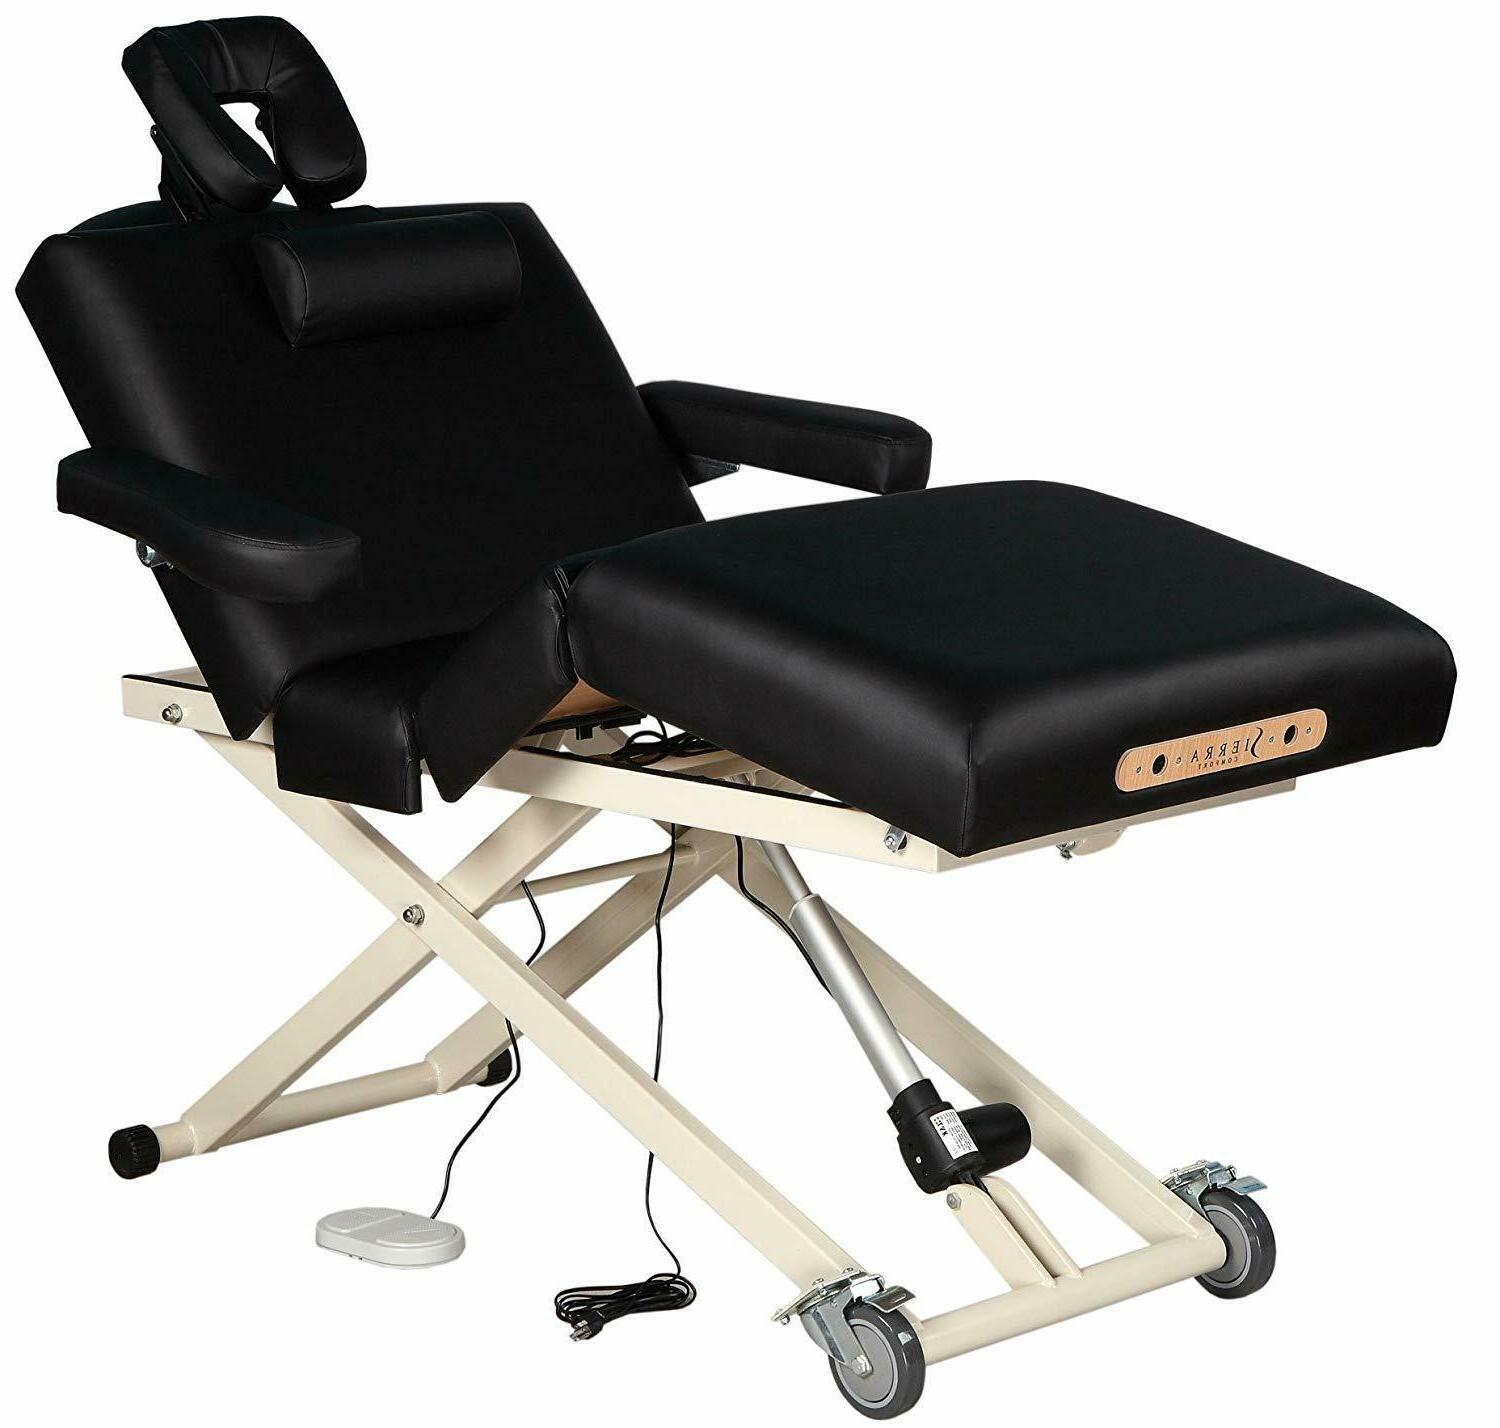 Sierra Comfort Adjustable Stationary Massage